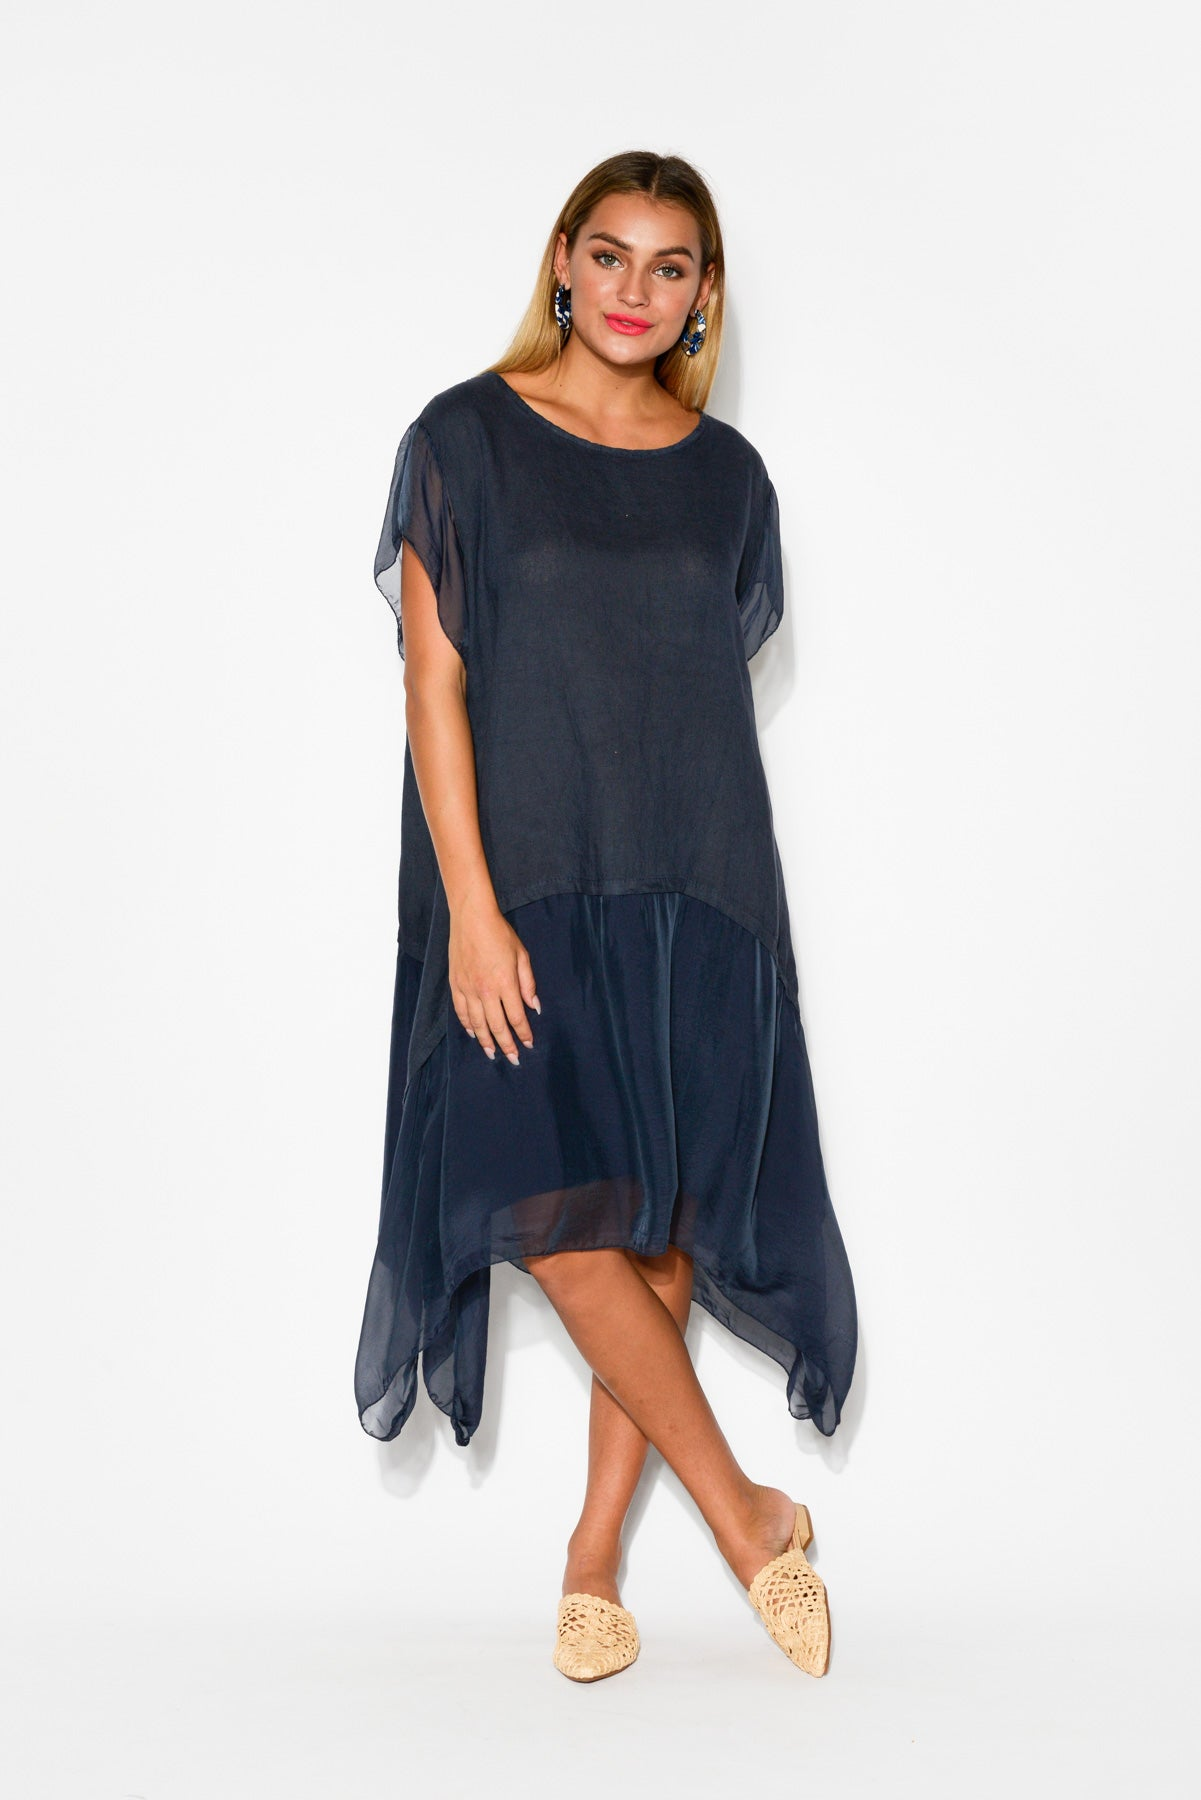 Navy Silk Layer Linen Dress - Blue Bungalow